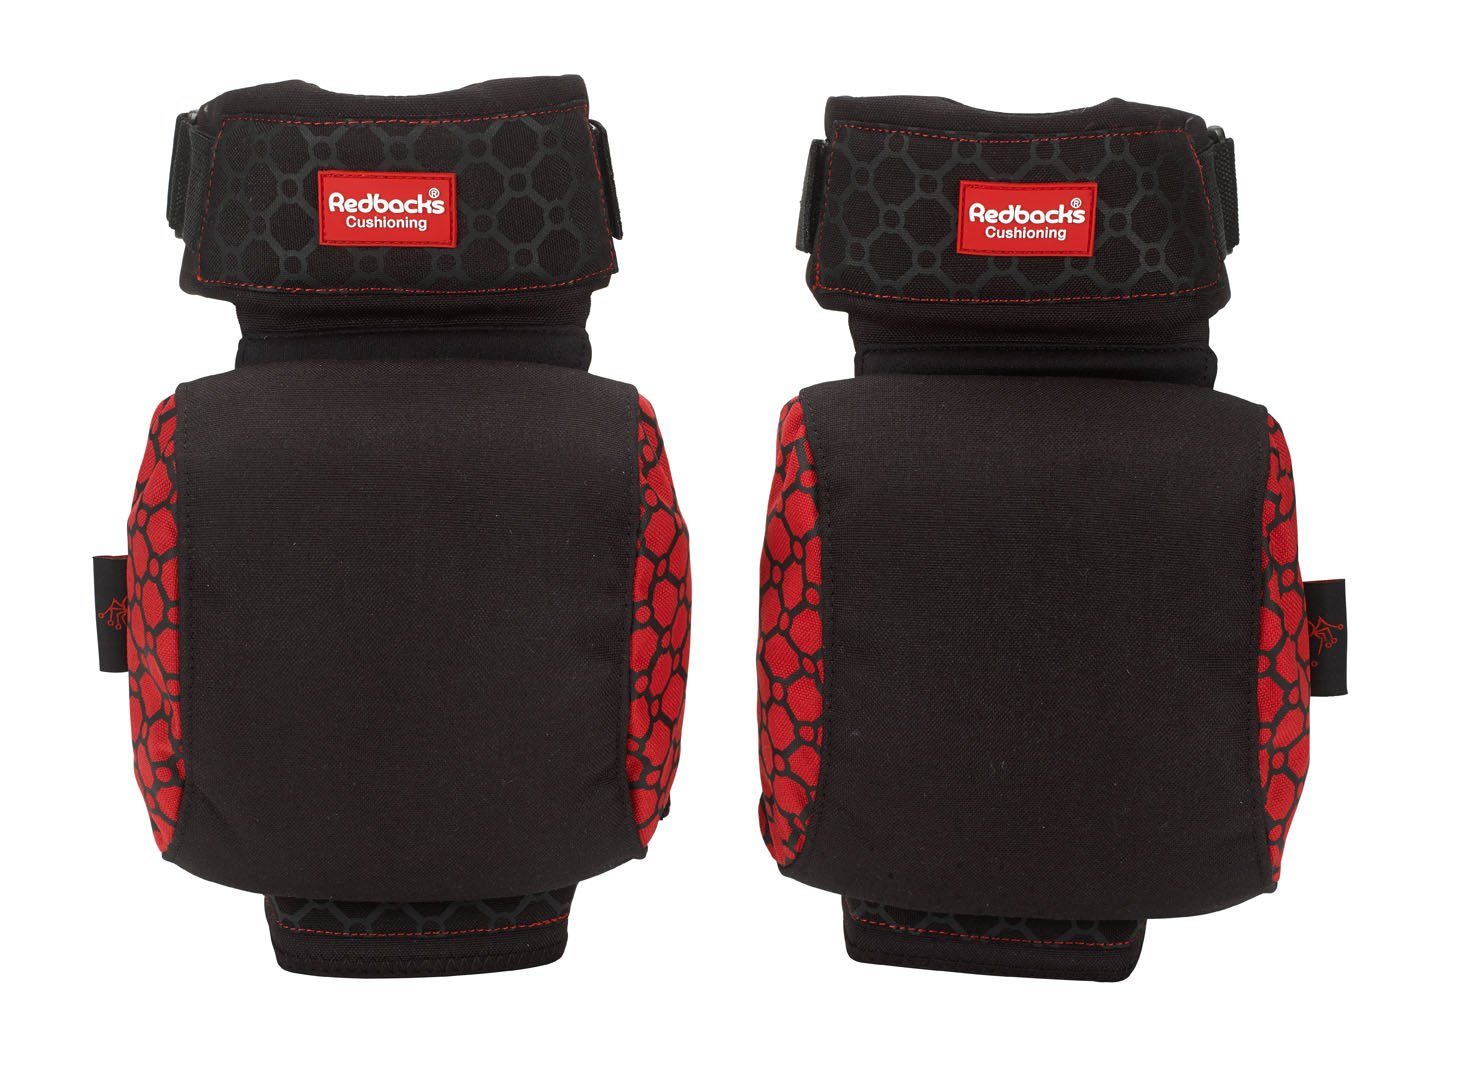 NEW Redbacks Strapped Knee Pads by Redbacks